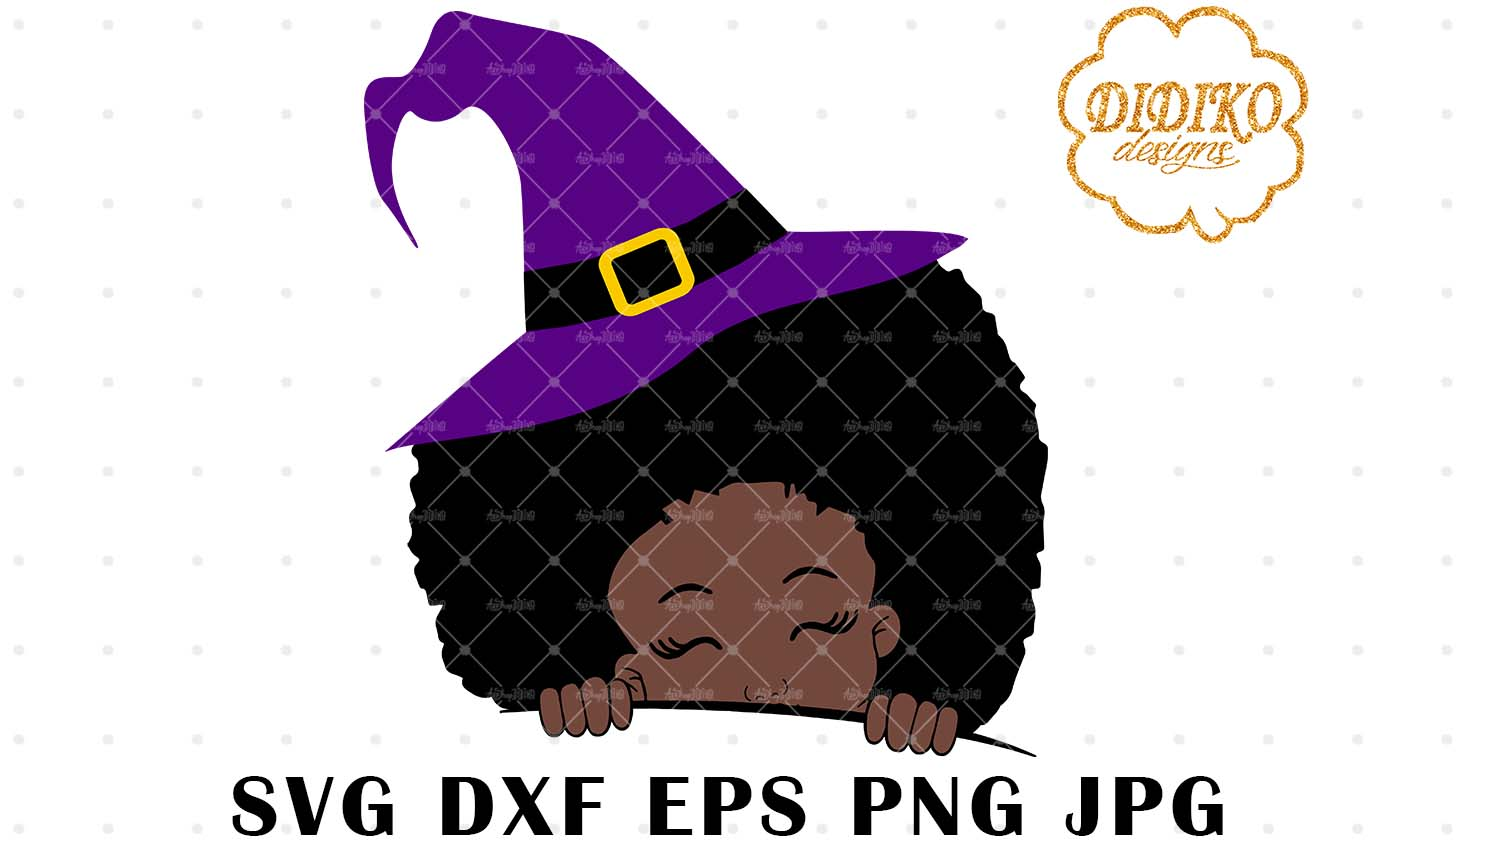 DIDIKO designs Halloween Afro Peek a Boo SVG